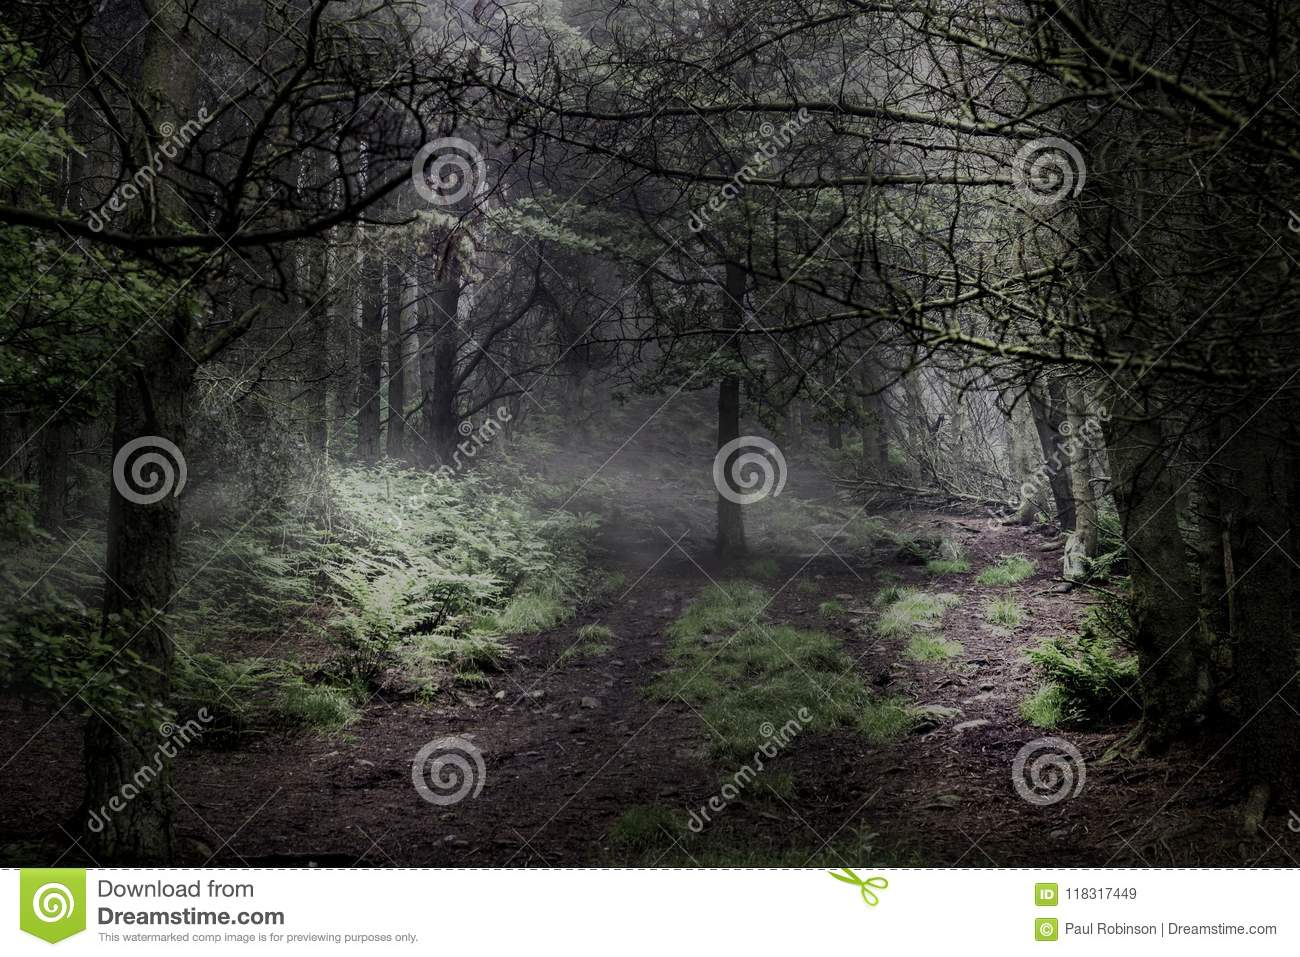 Enchanted magical forest.